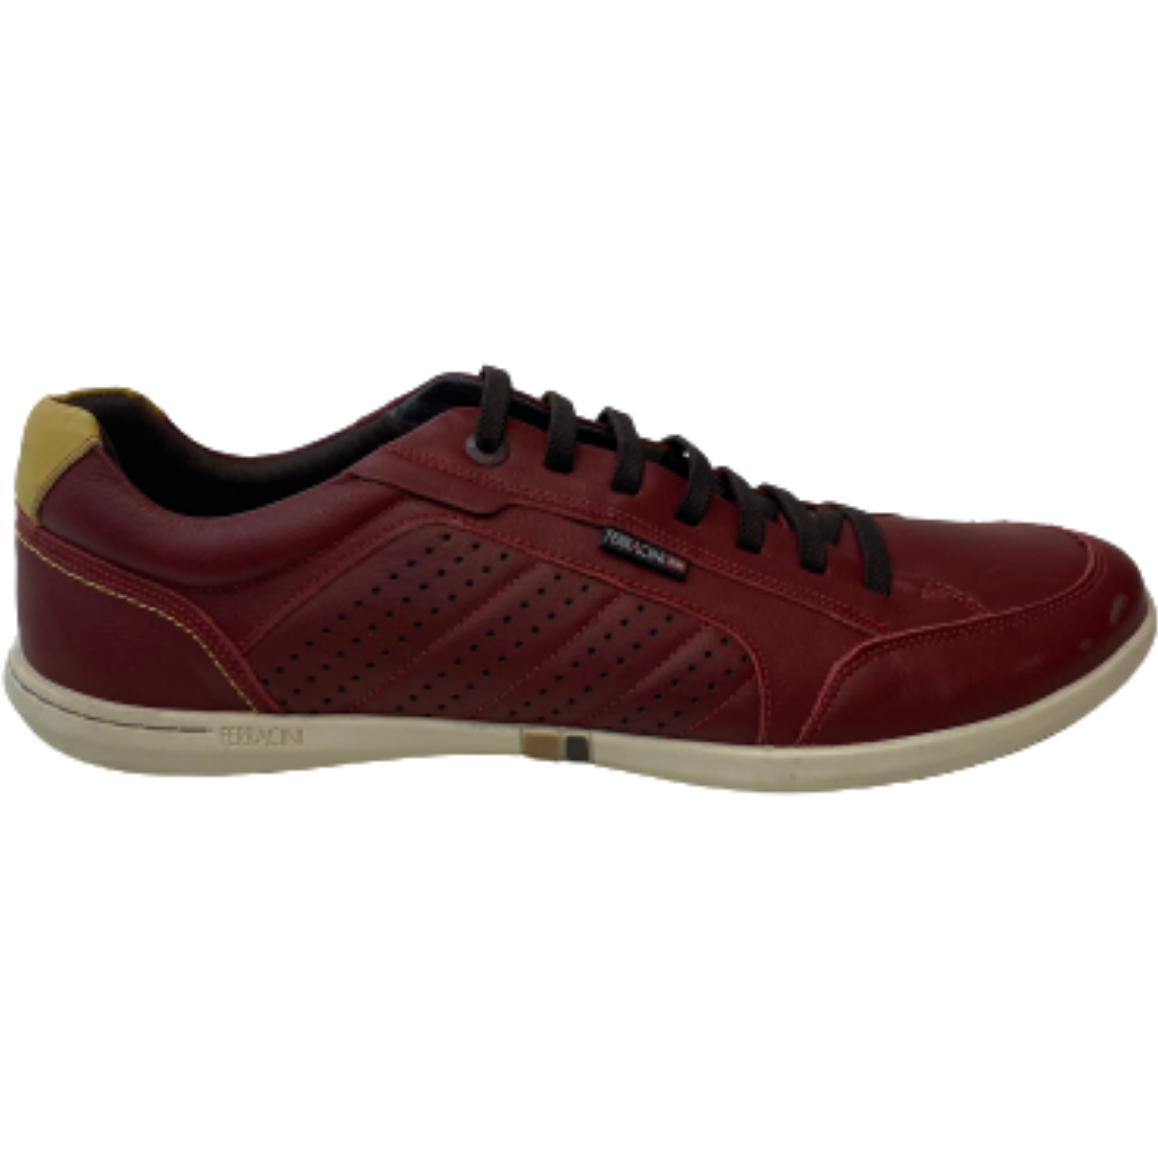 Ferracini Square Casual Shoe in Bordo